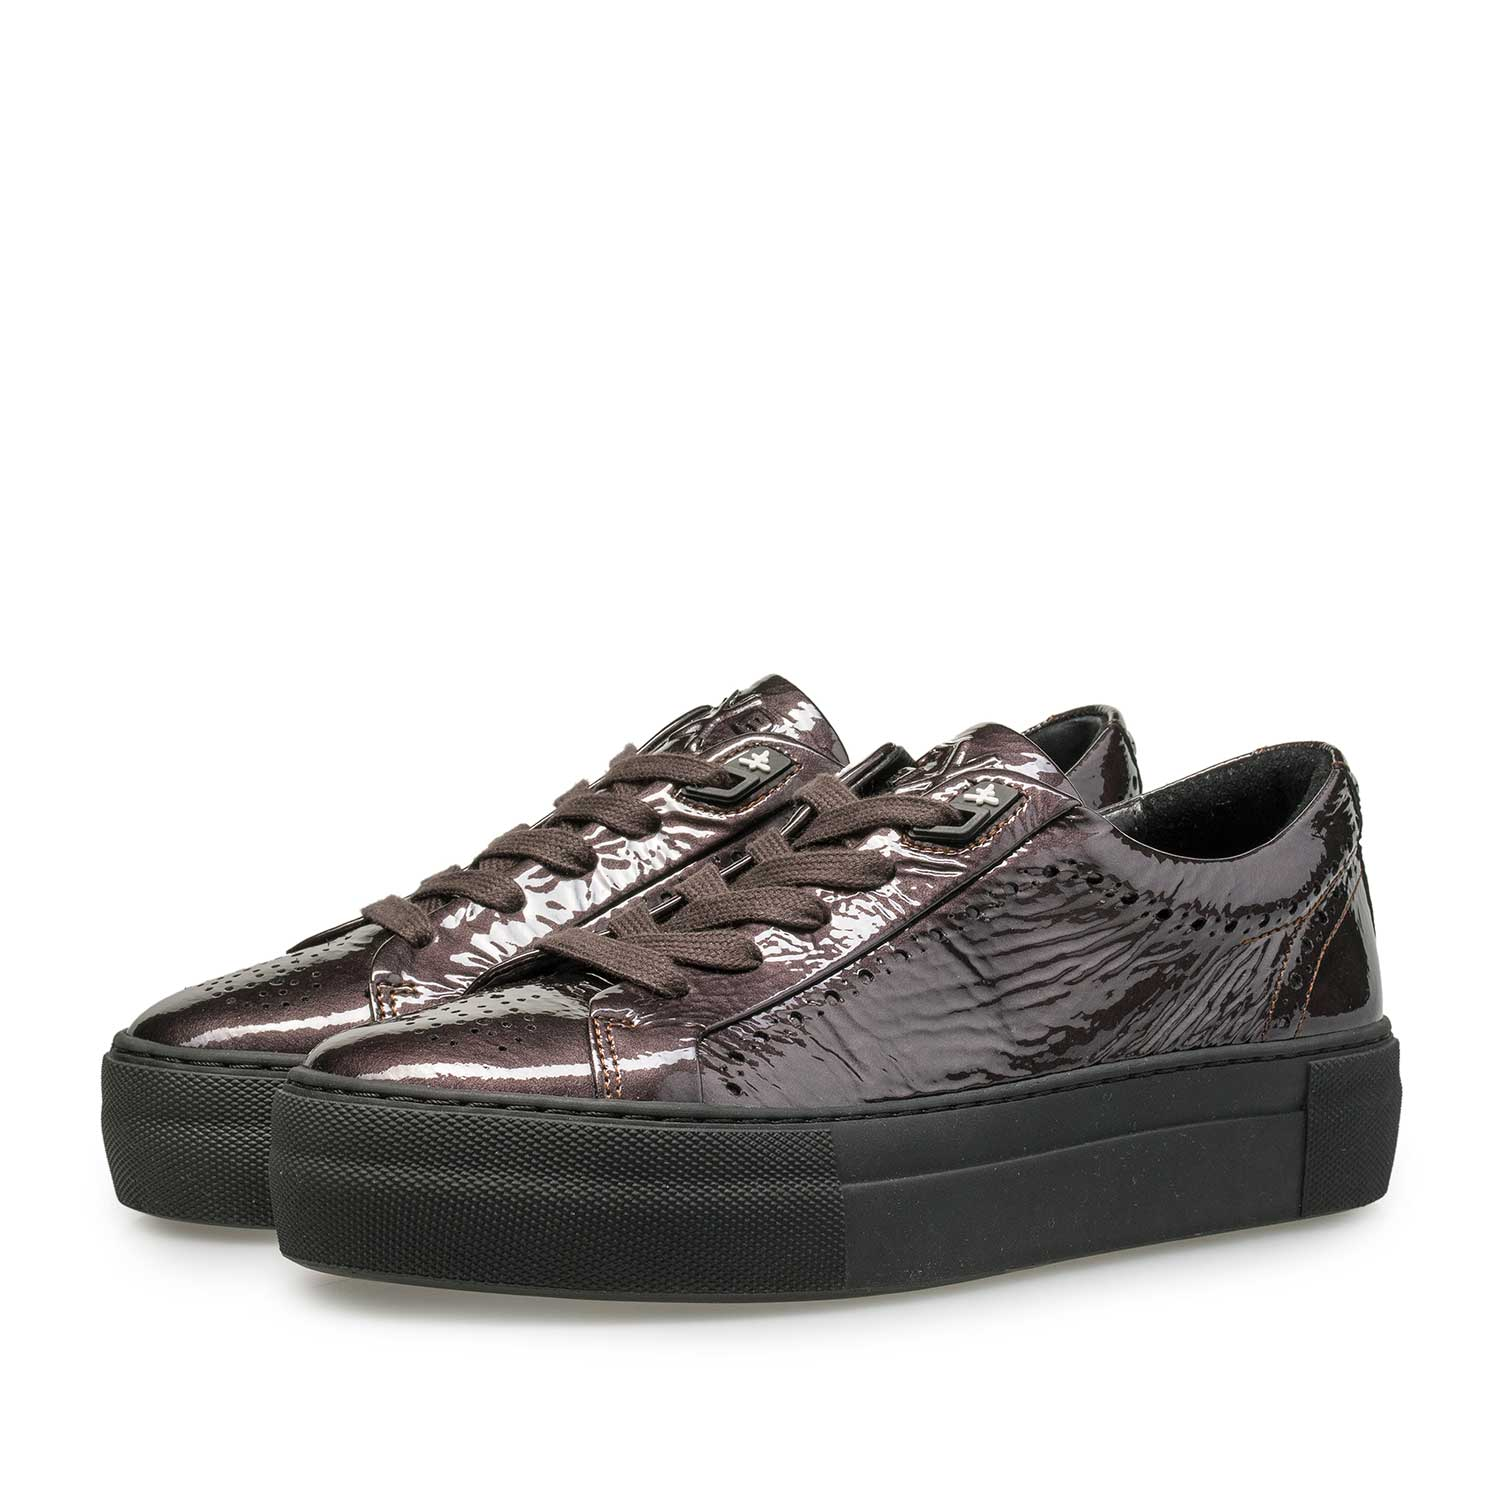 85253/03 - Burgundy red & taupe-coloured patent leather sneaker with wrinkle effect